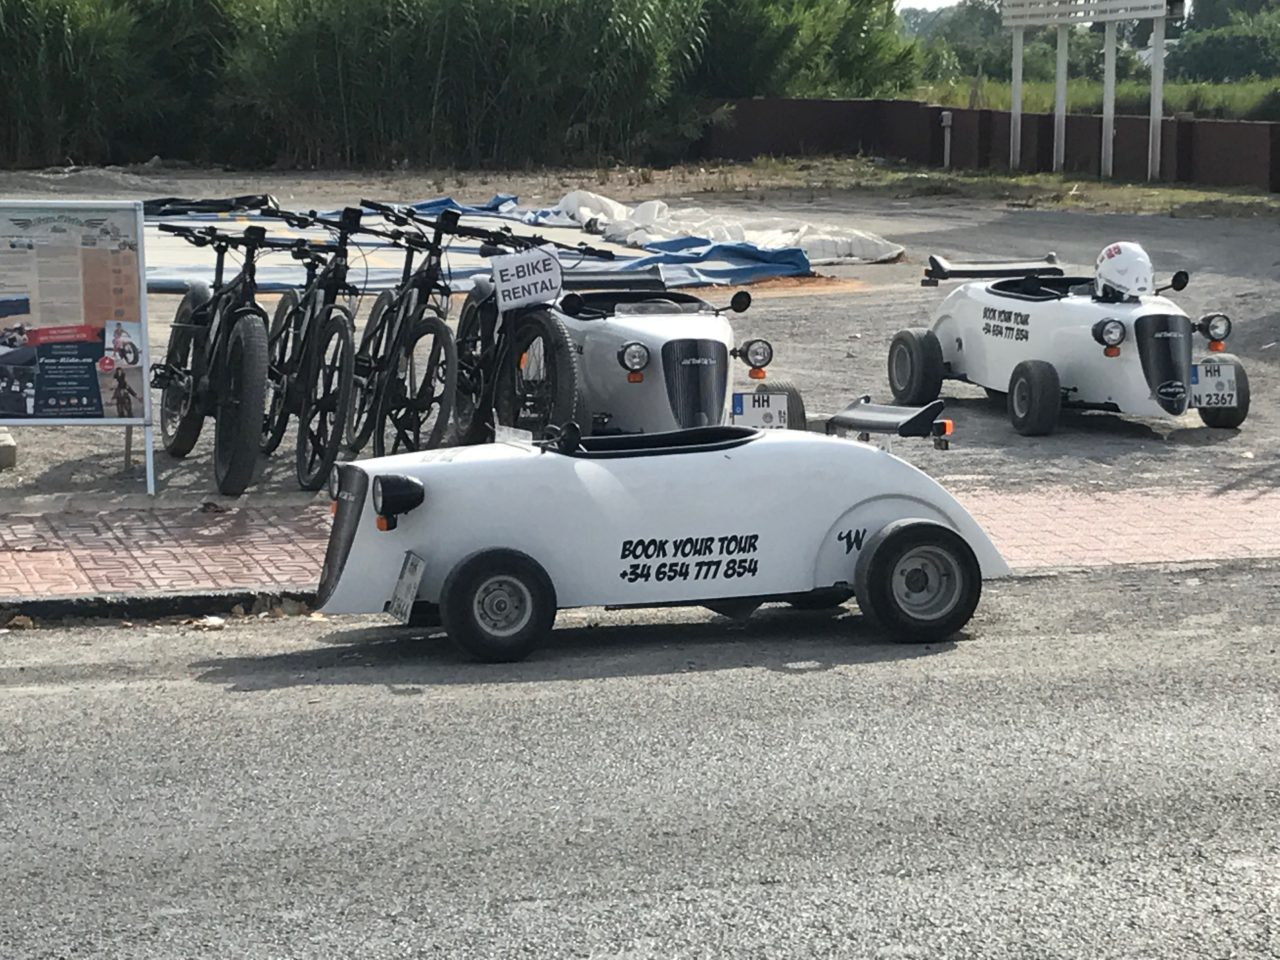 Street-Legal Mini Go Cart Car And Bikes